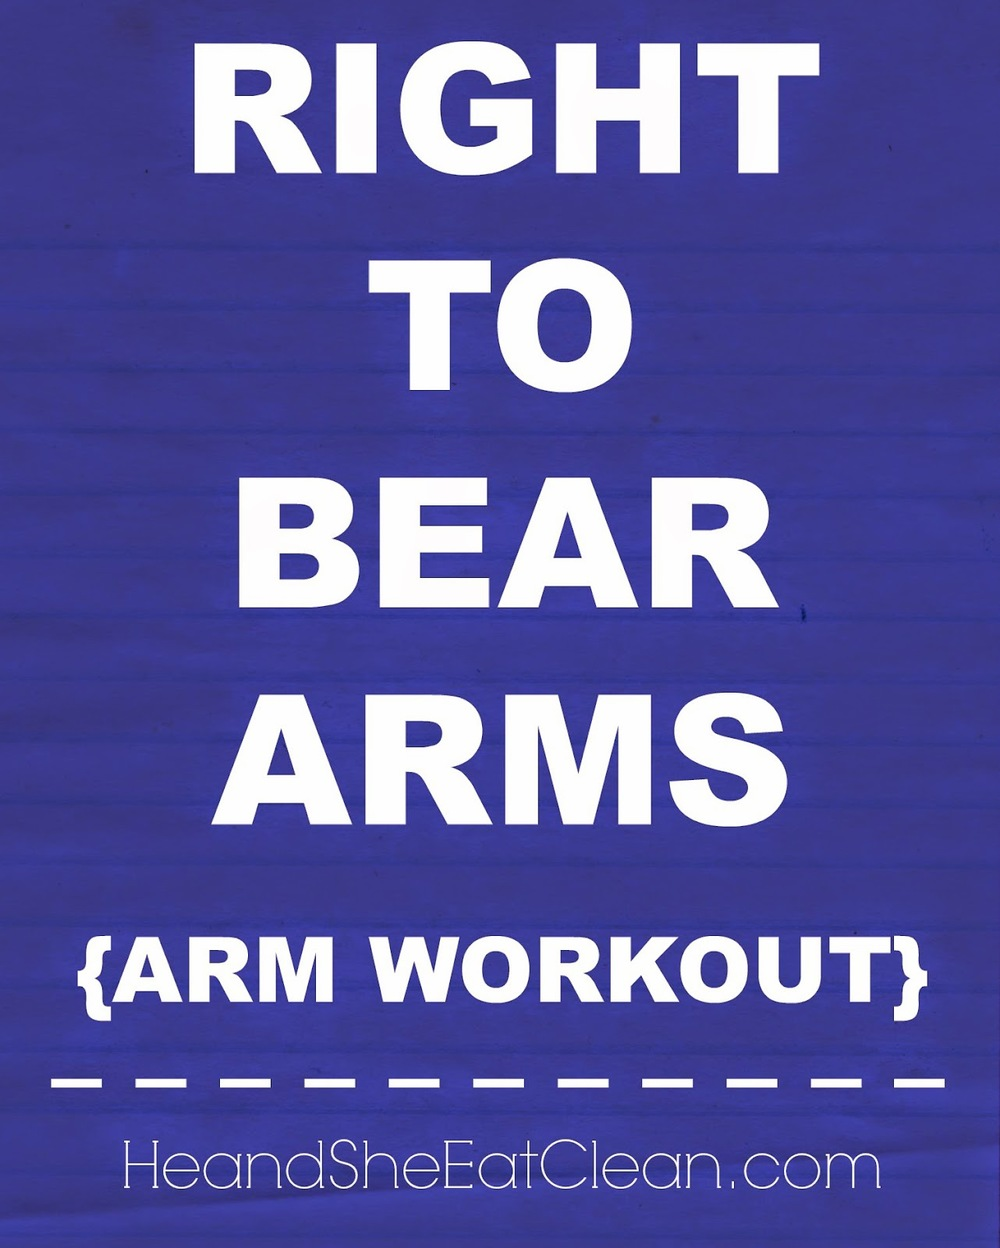 right-to-bear-arms-bicep-tricep-routine-weight-training-strength-toned-lean-he-and-she-eat-clean-strong-not-skinny.jpg